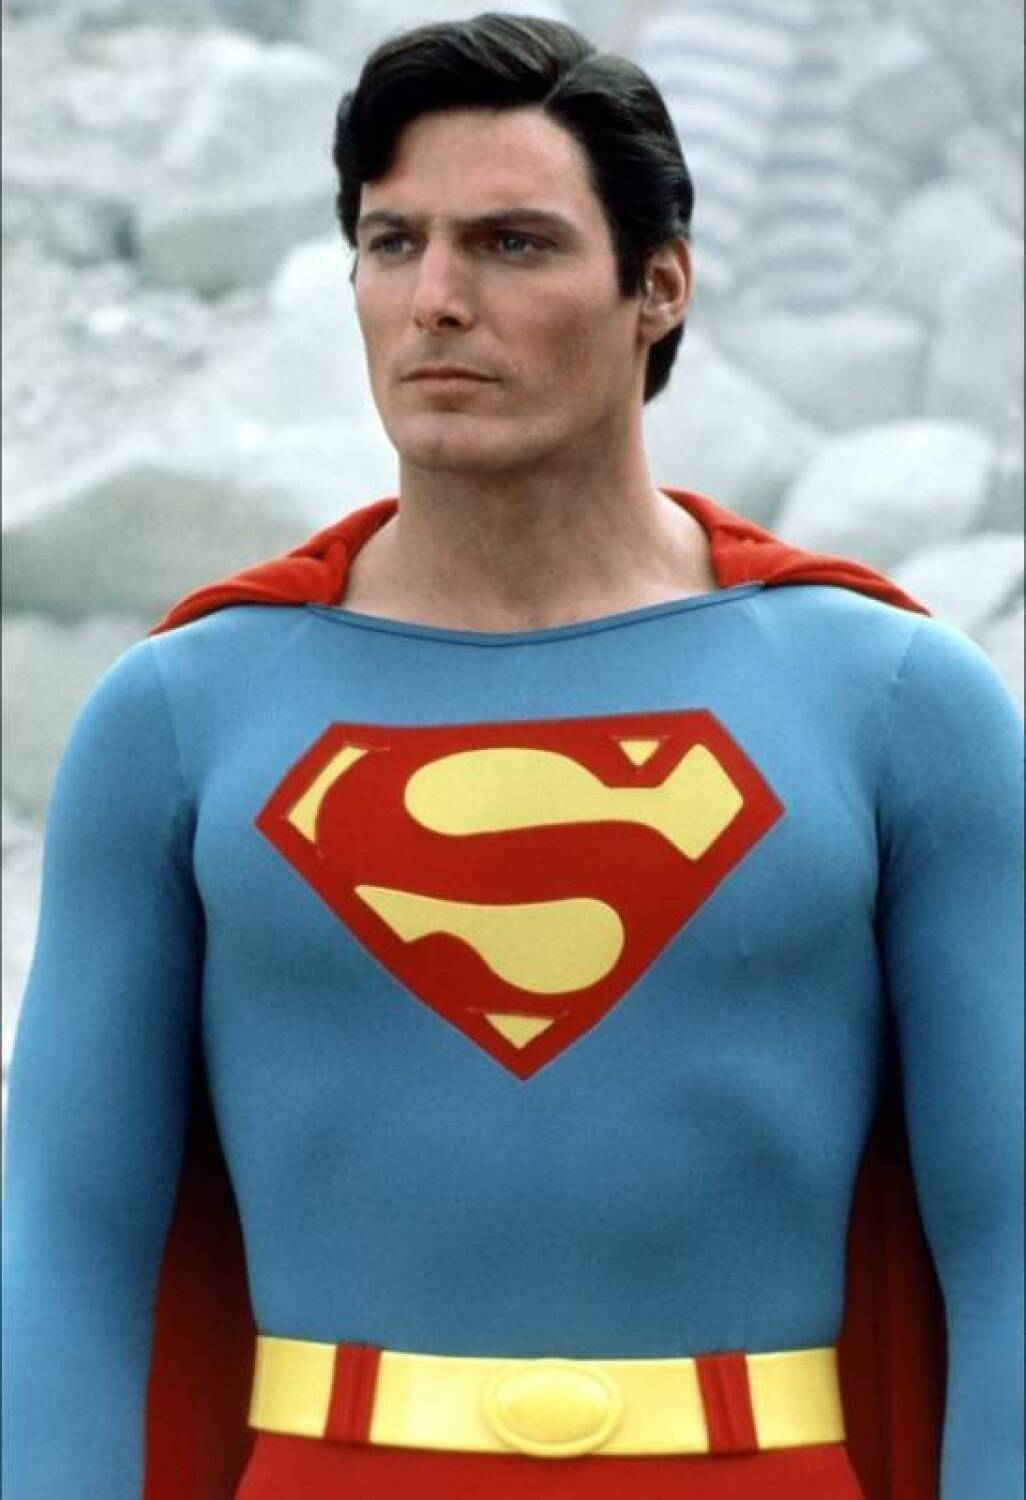 SUPERMAN IV CHRISTOPHER REEVE COSTUME - Current price: $27500